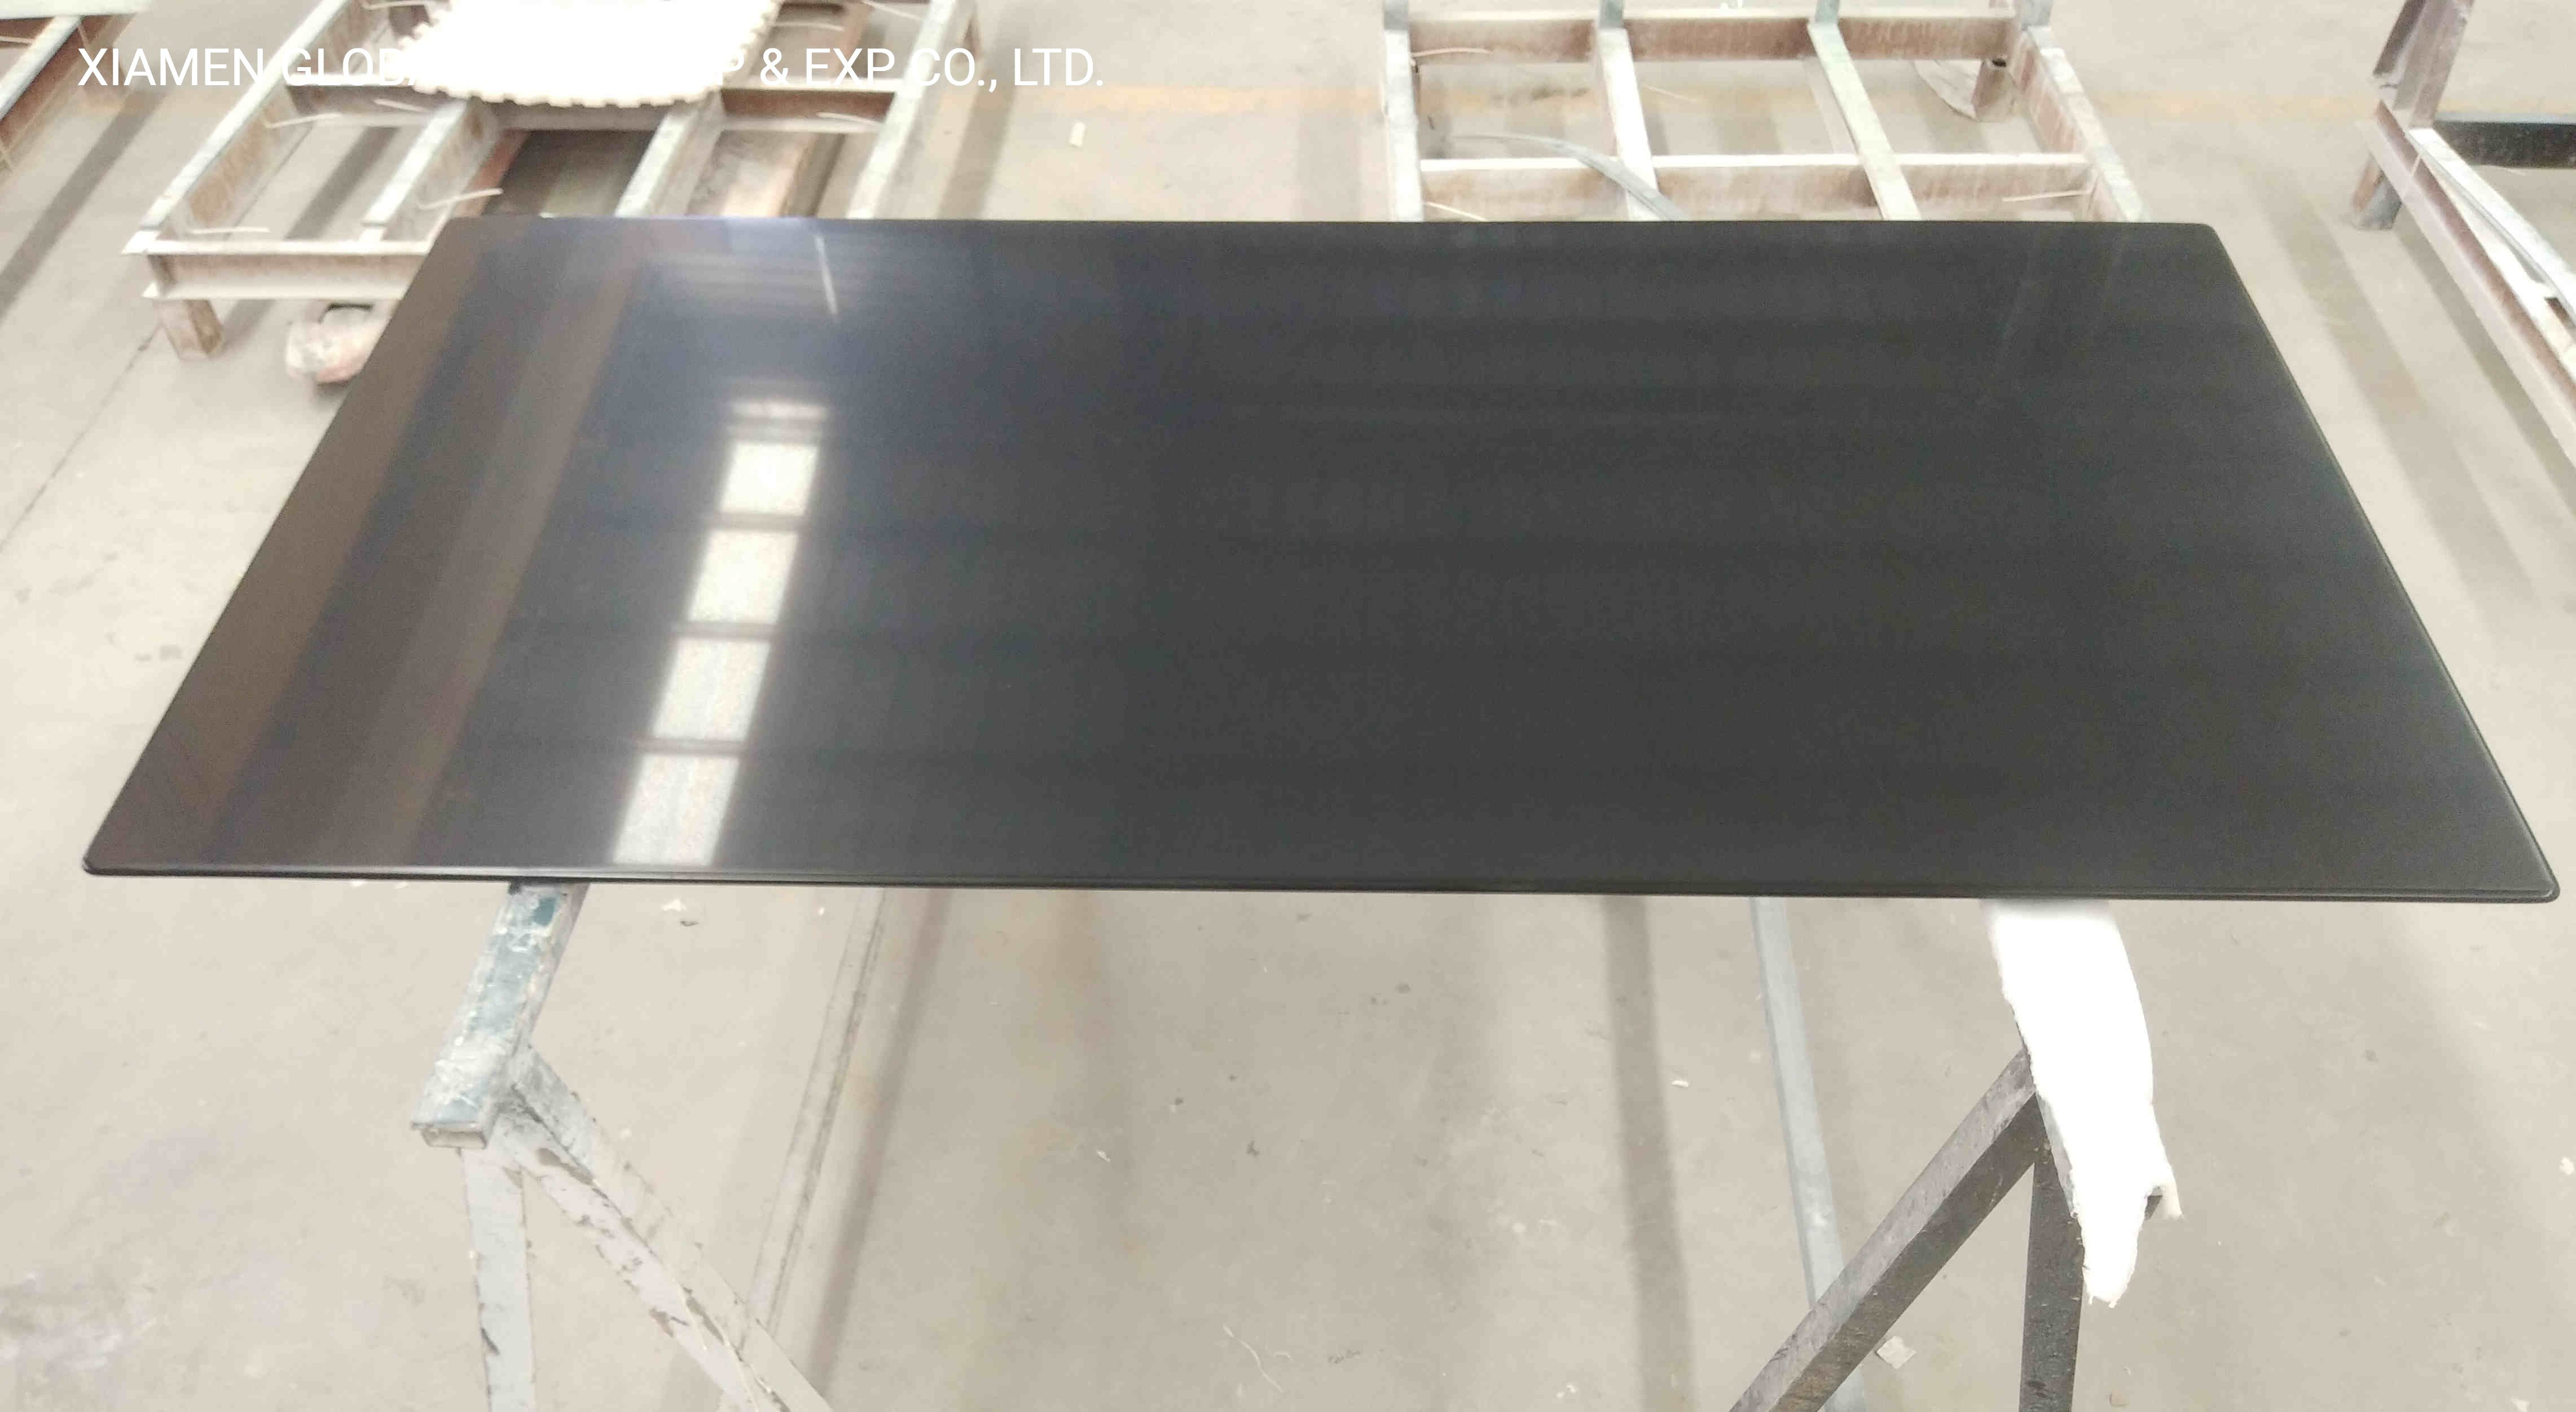 China Custom Engineering Pure Black Quartz Stone Kitchen Island Tops Dining Table For Multi Family Living Room Projects China Kitchen Countertop Stone Countertop